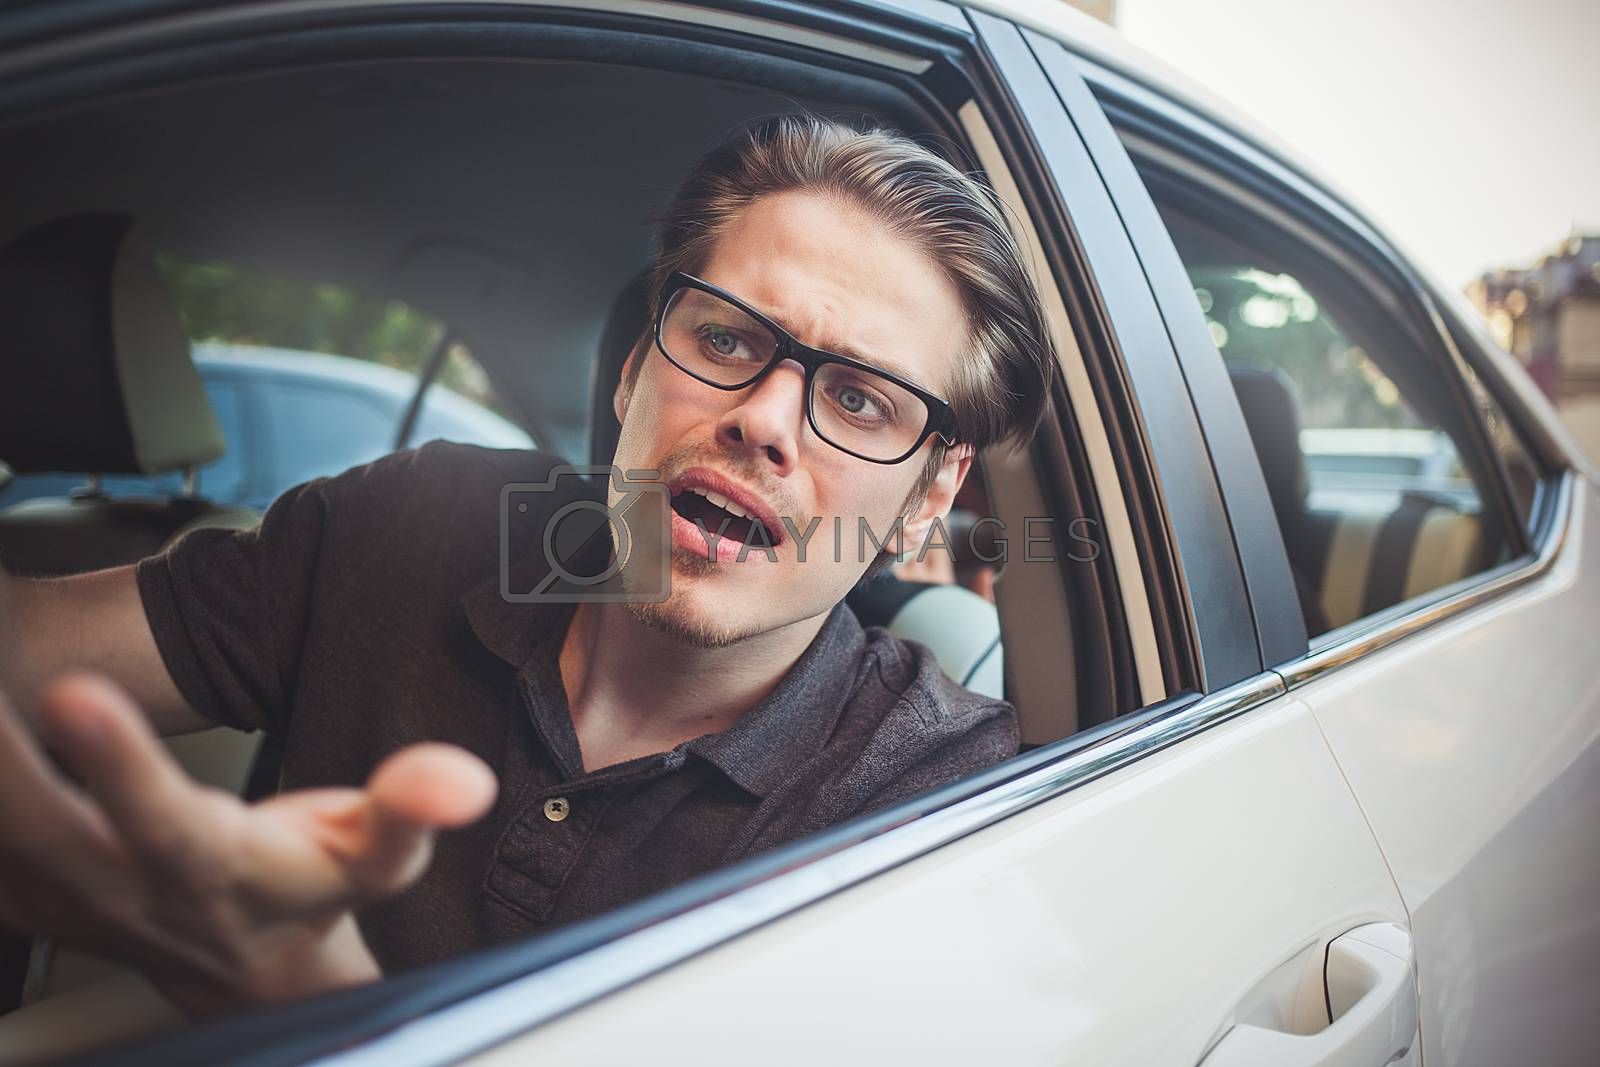 Accident. Young caucasian man driving a car shocked about to have traffic accident